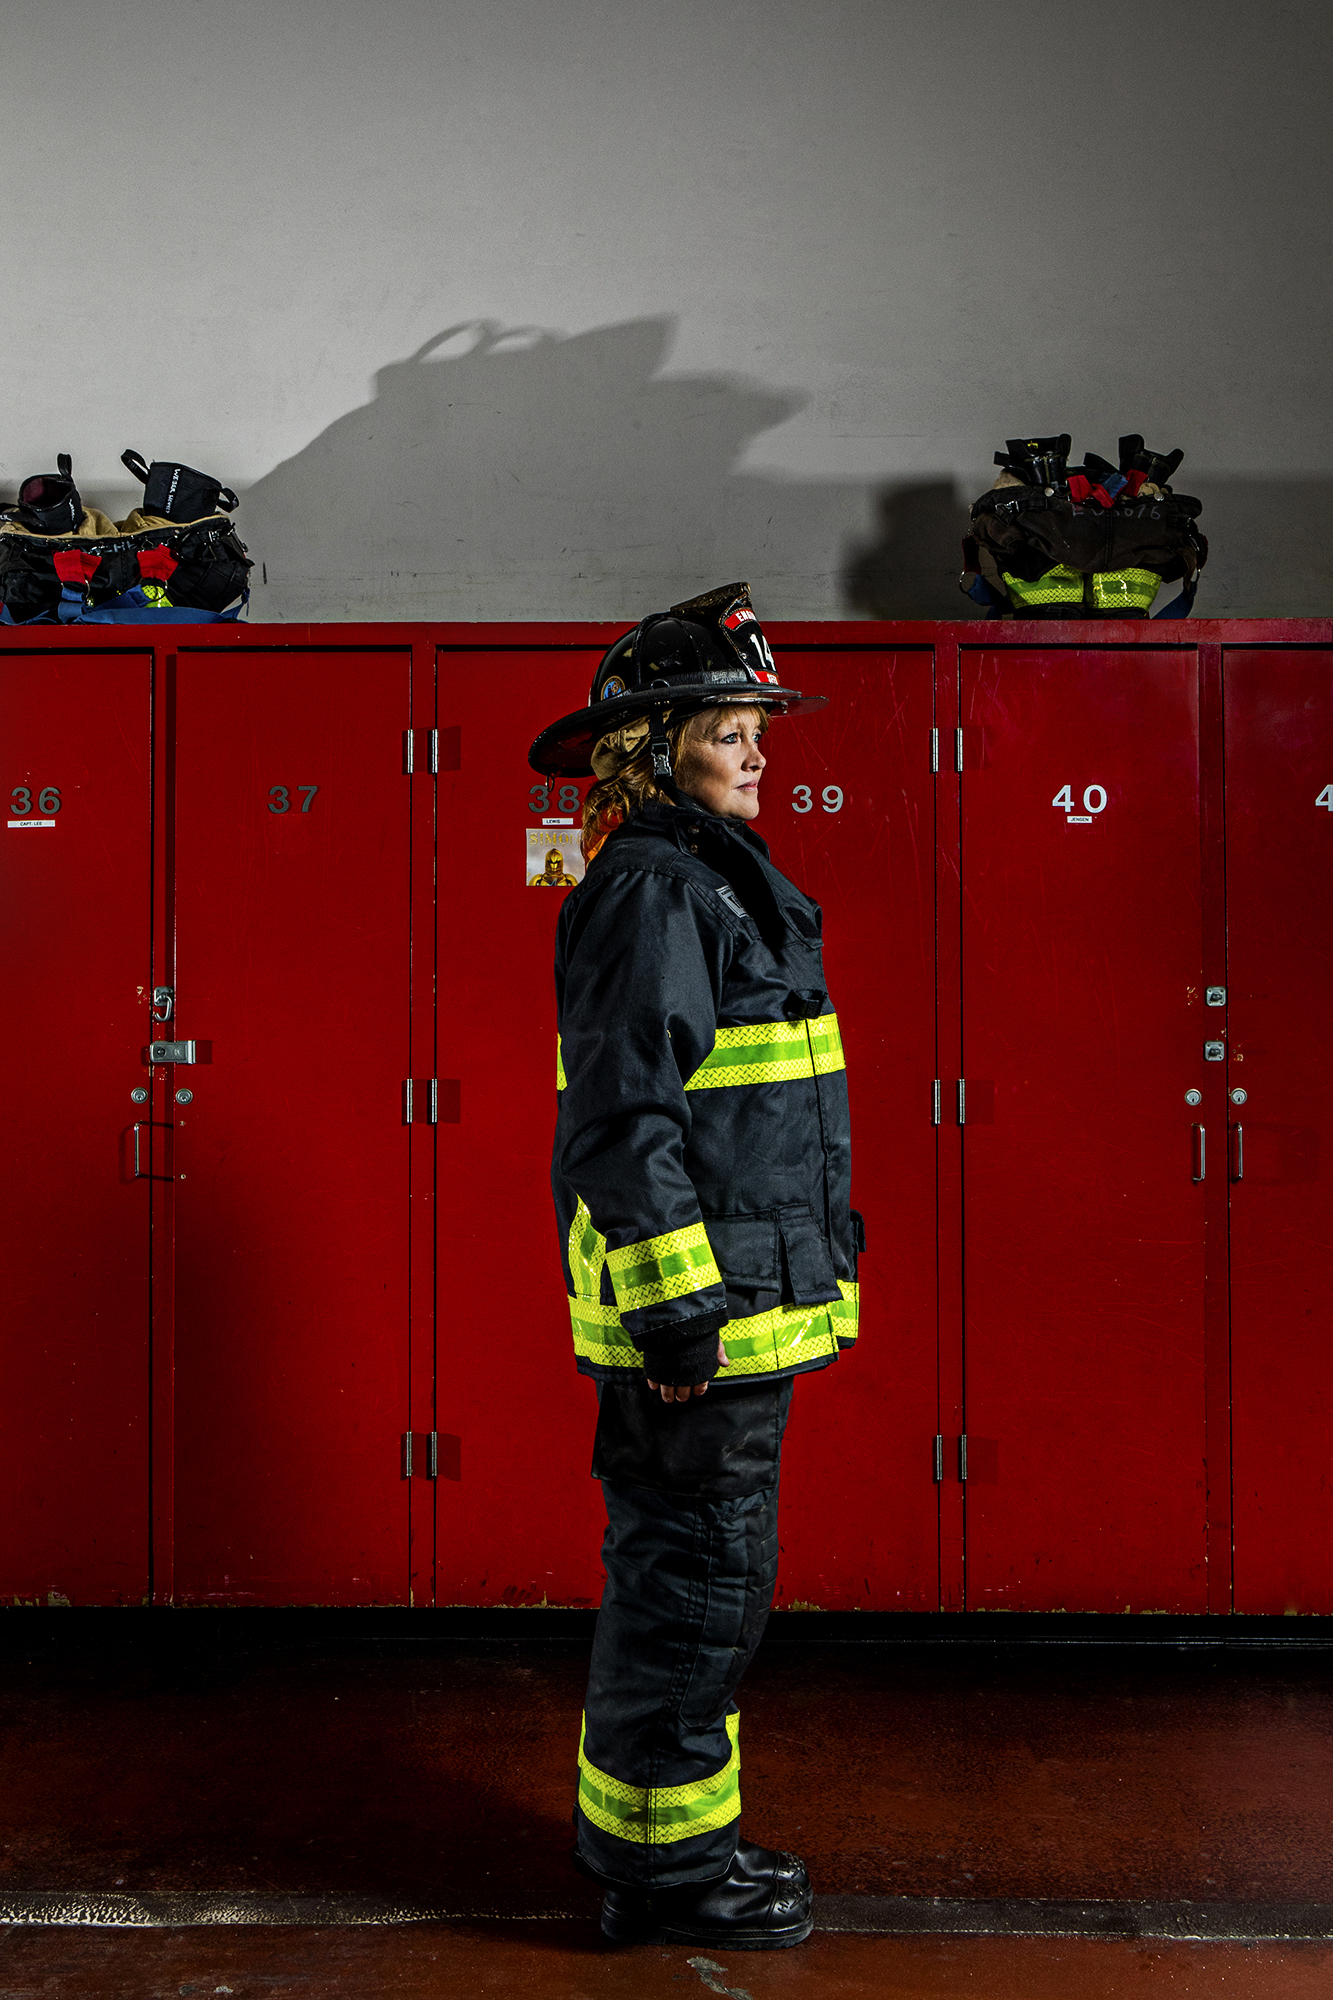 Mary Minogue-Reidy - Firefighter, 16 years.